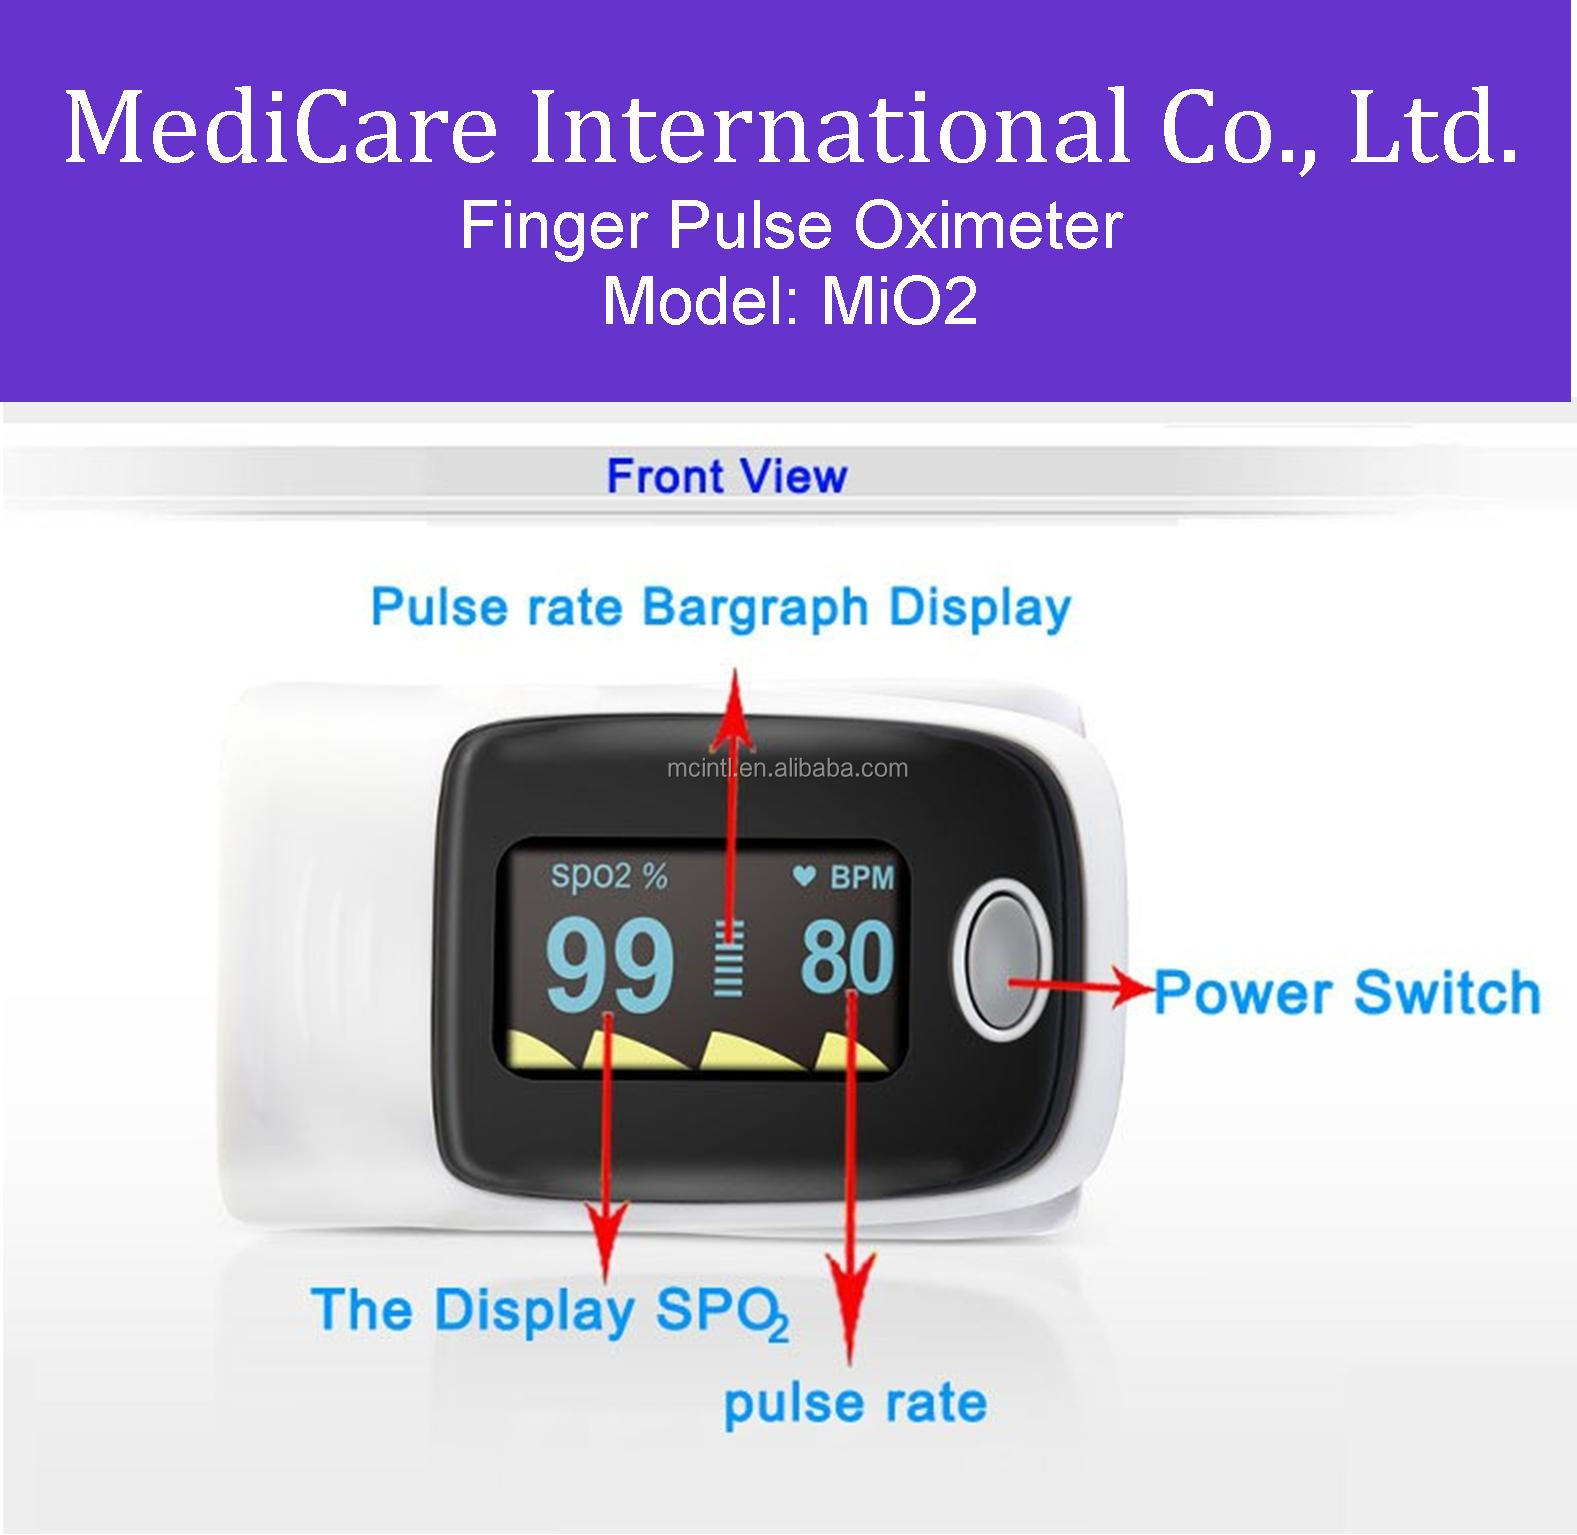 MediCare MiO2 SpO2 Color OLED Display Finger Pulse Oximeter